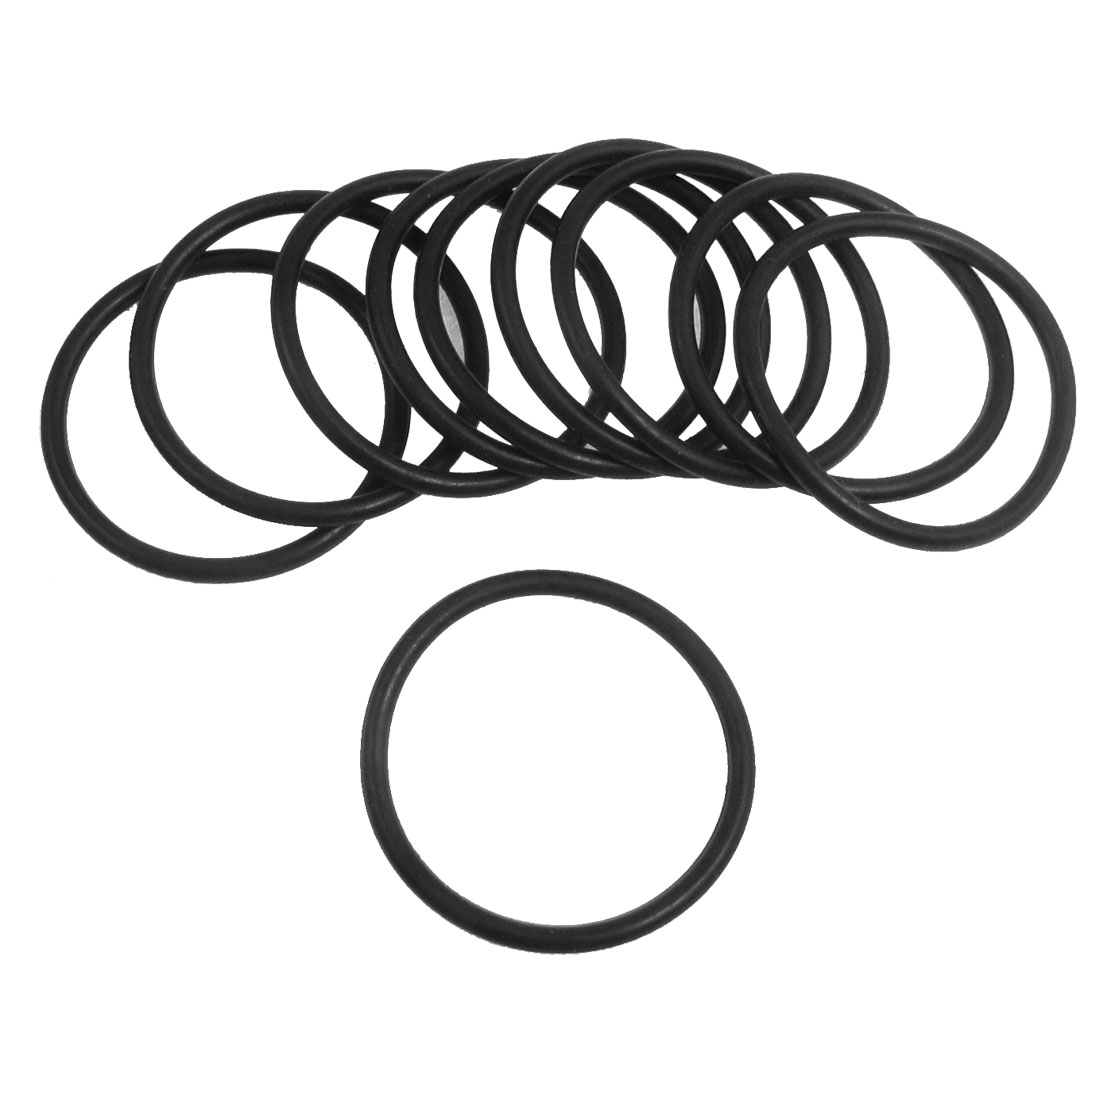 10 Pcs 33.5mm x 2.65mm Black Silicone O Rings Oil Seals Gaskets